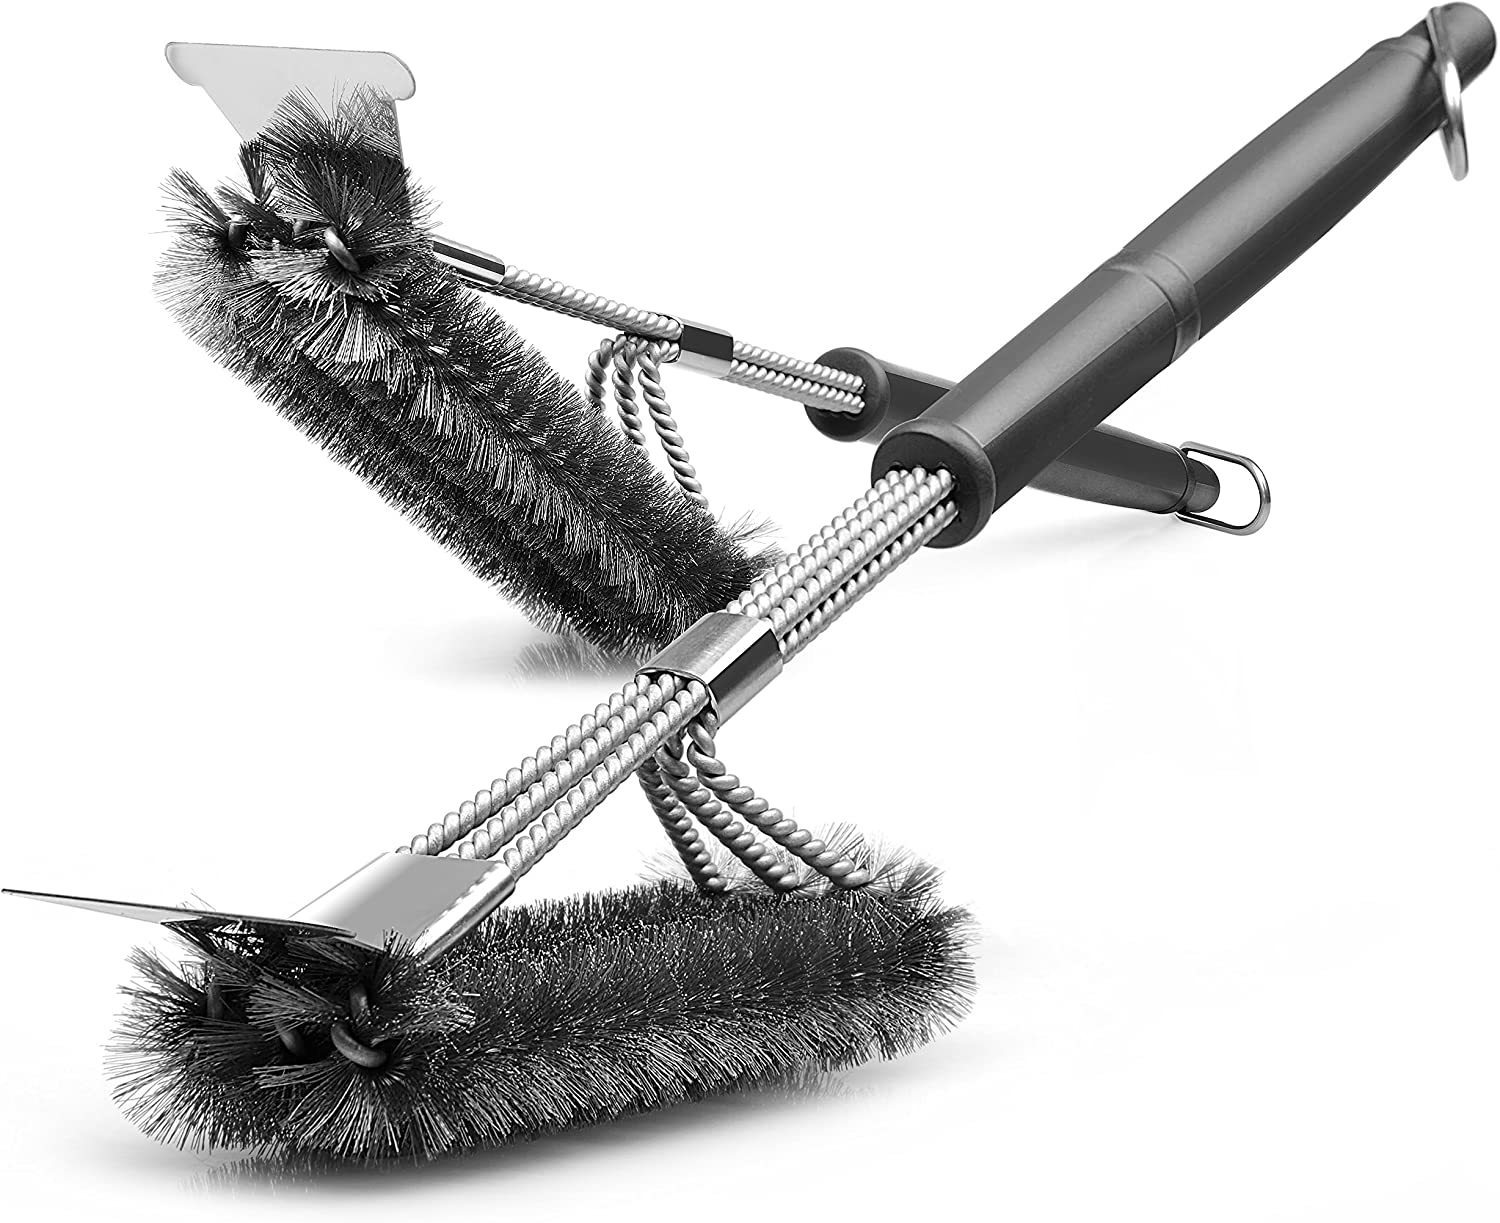 """Gama Grill Brush and Scraper - Bristle Free - 2 Packs, Barbecue Cleaning, 17"""" Stainless Steel Woven Wire 3 in 1, Durable BBQ Grill Cleaner Brush Tool Perfect for Grill, Cooking, Grates Burners : Garden & Outdoor"""